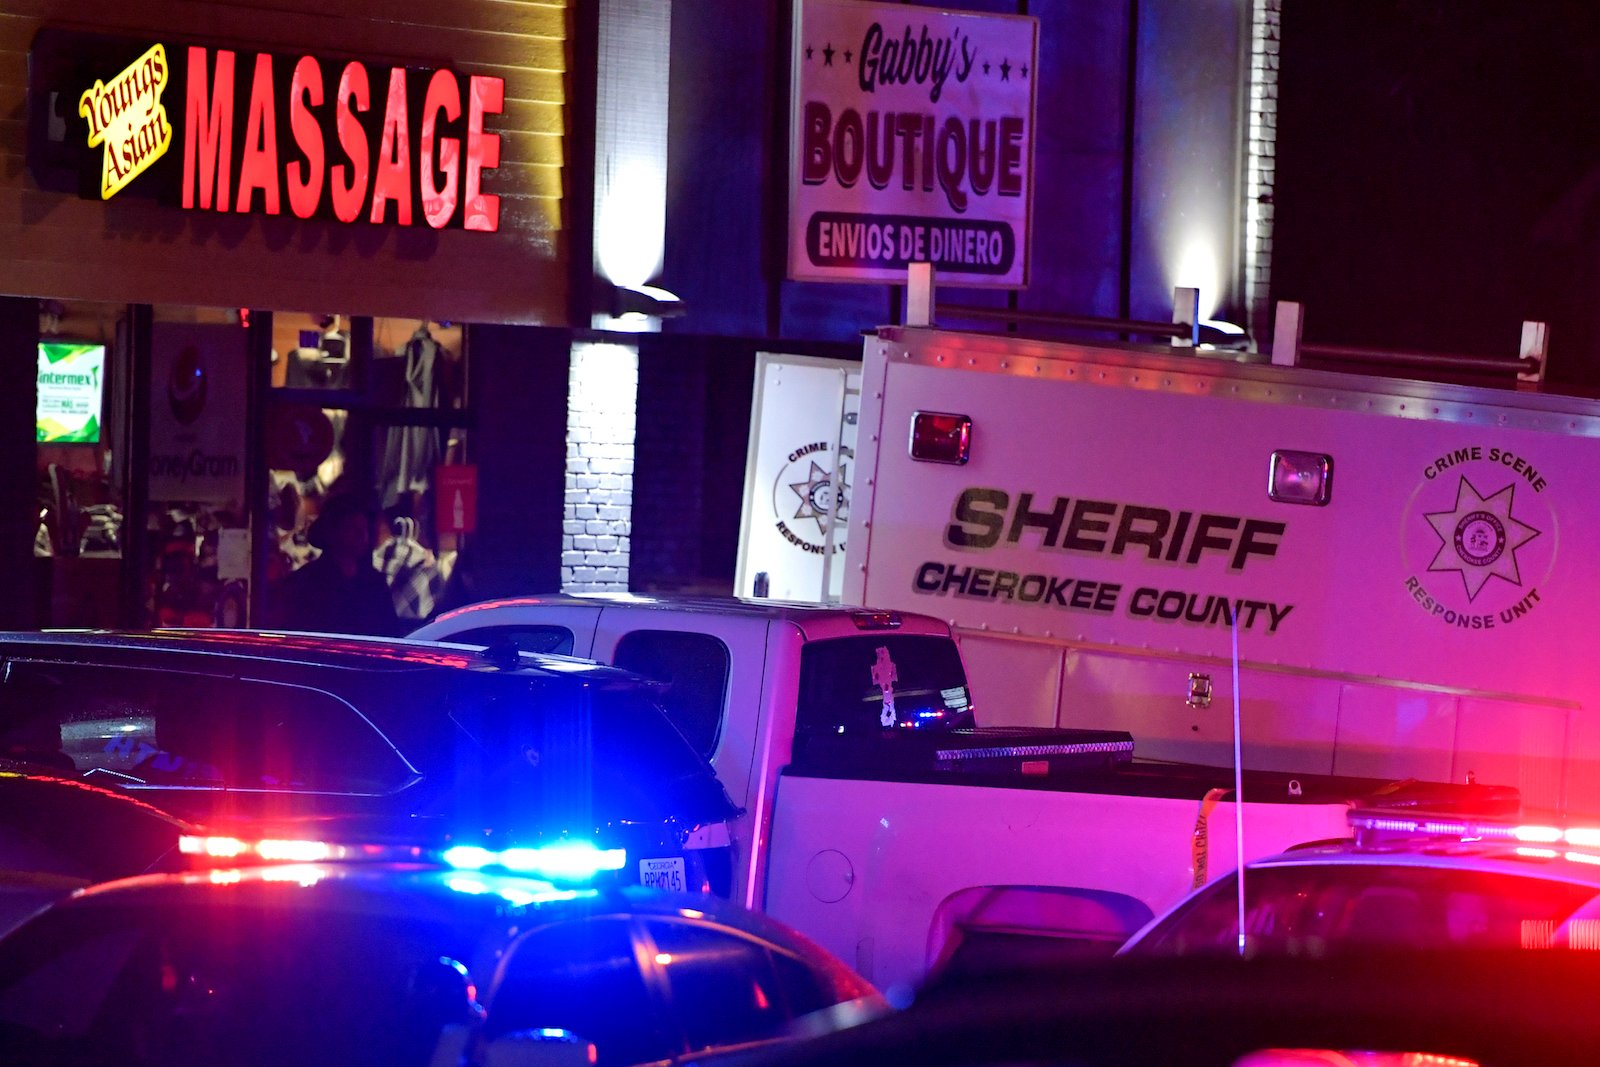 Authorities investigate a multiple fatal shooting at a spa March 16, 2021, in Acworth, Georgia. Cherokee County sheriff's Capt. Jay Baker said Robert Aaron Long of Woodstock, Georgia, was taken into custody in Crisp County on Tuesday night. (AP Photo/Mike Stewart)